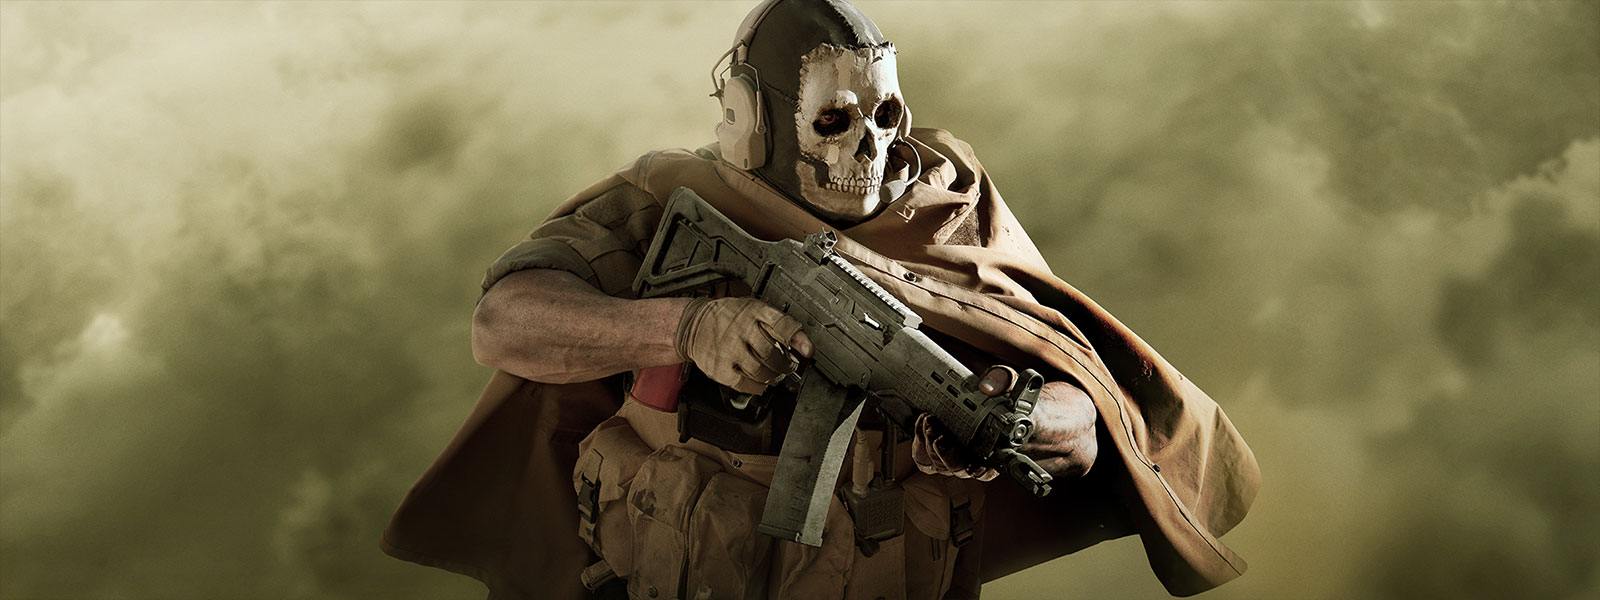 Ghost from Call of Duty: Modern Warfare in skull mask and stealth gear